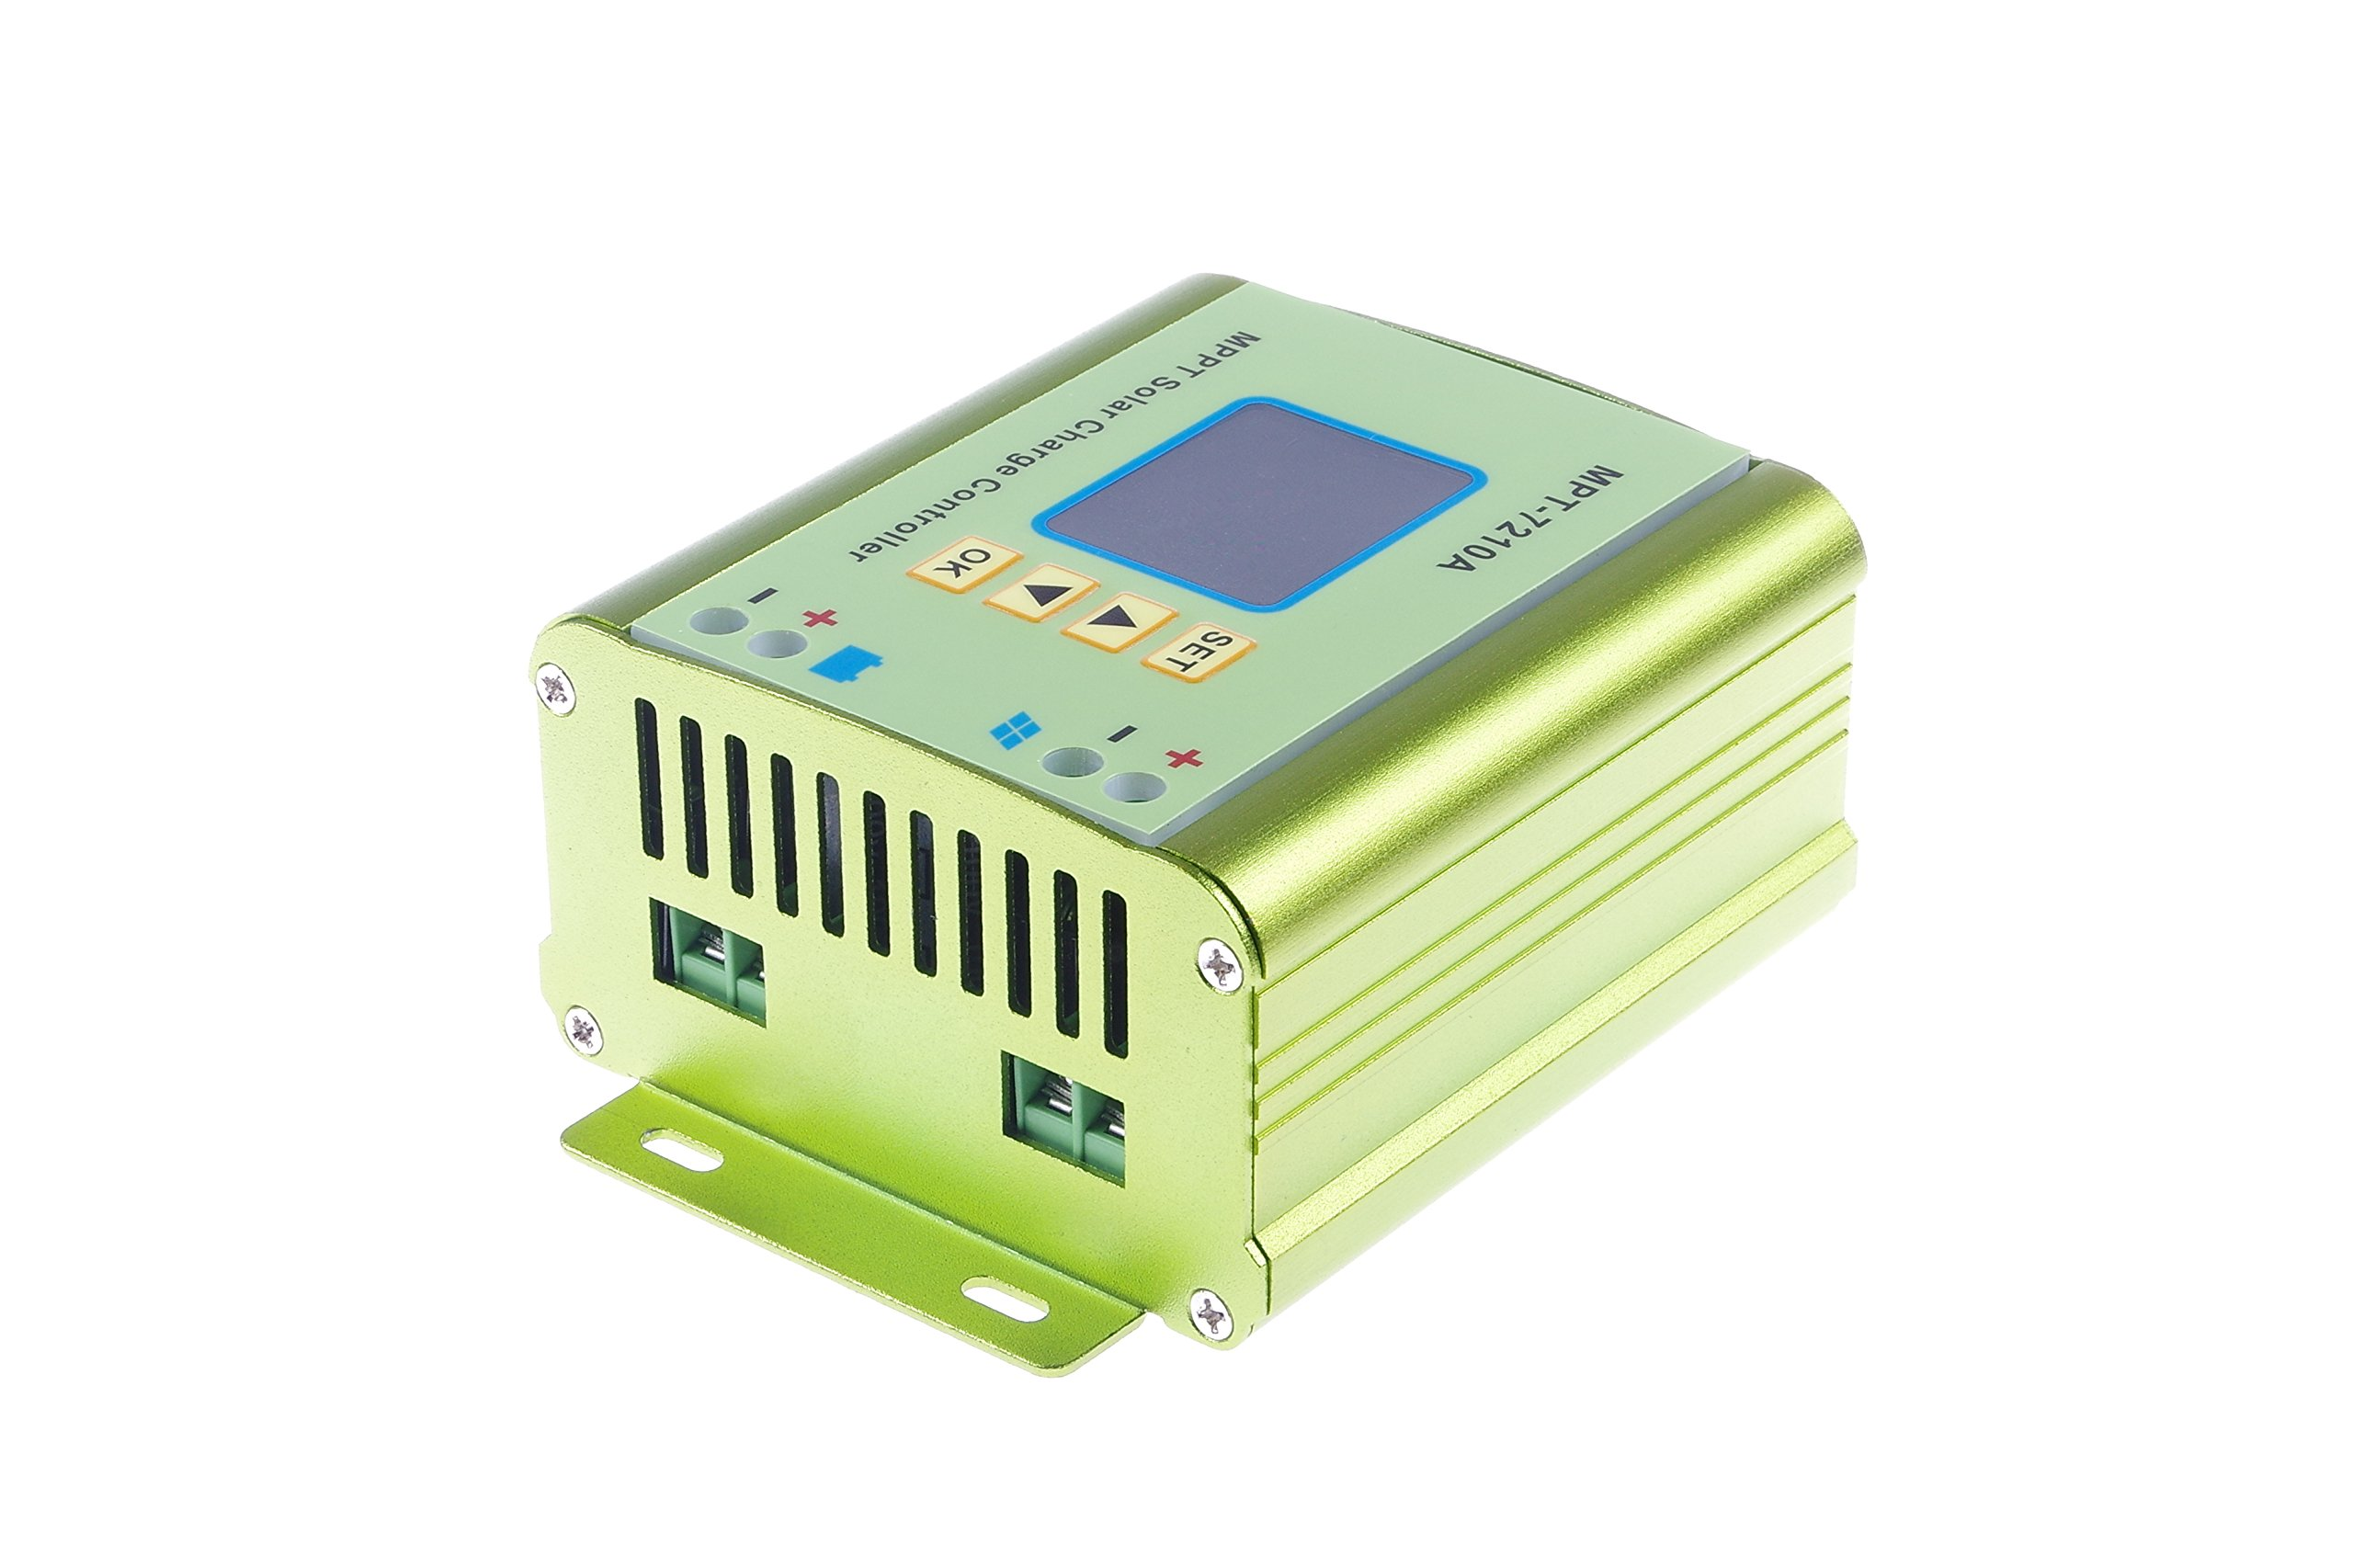 KNACRO MPPT Solar Charge Controller Regulator Charge Controller With Digital Display and Adjustable Suitable DC 12-60V Step Up TO DC 15-90V for 24V 36V 48V 72V (12-60V) 0-10A battery charging